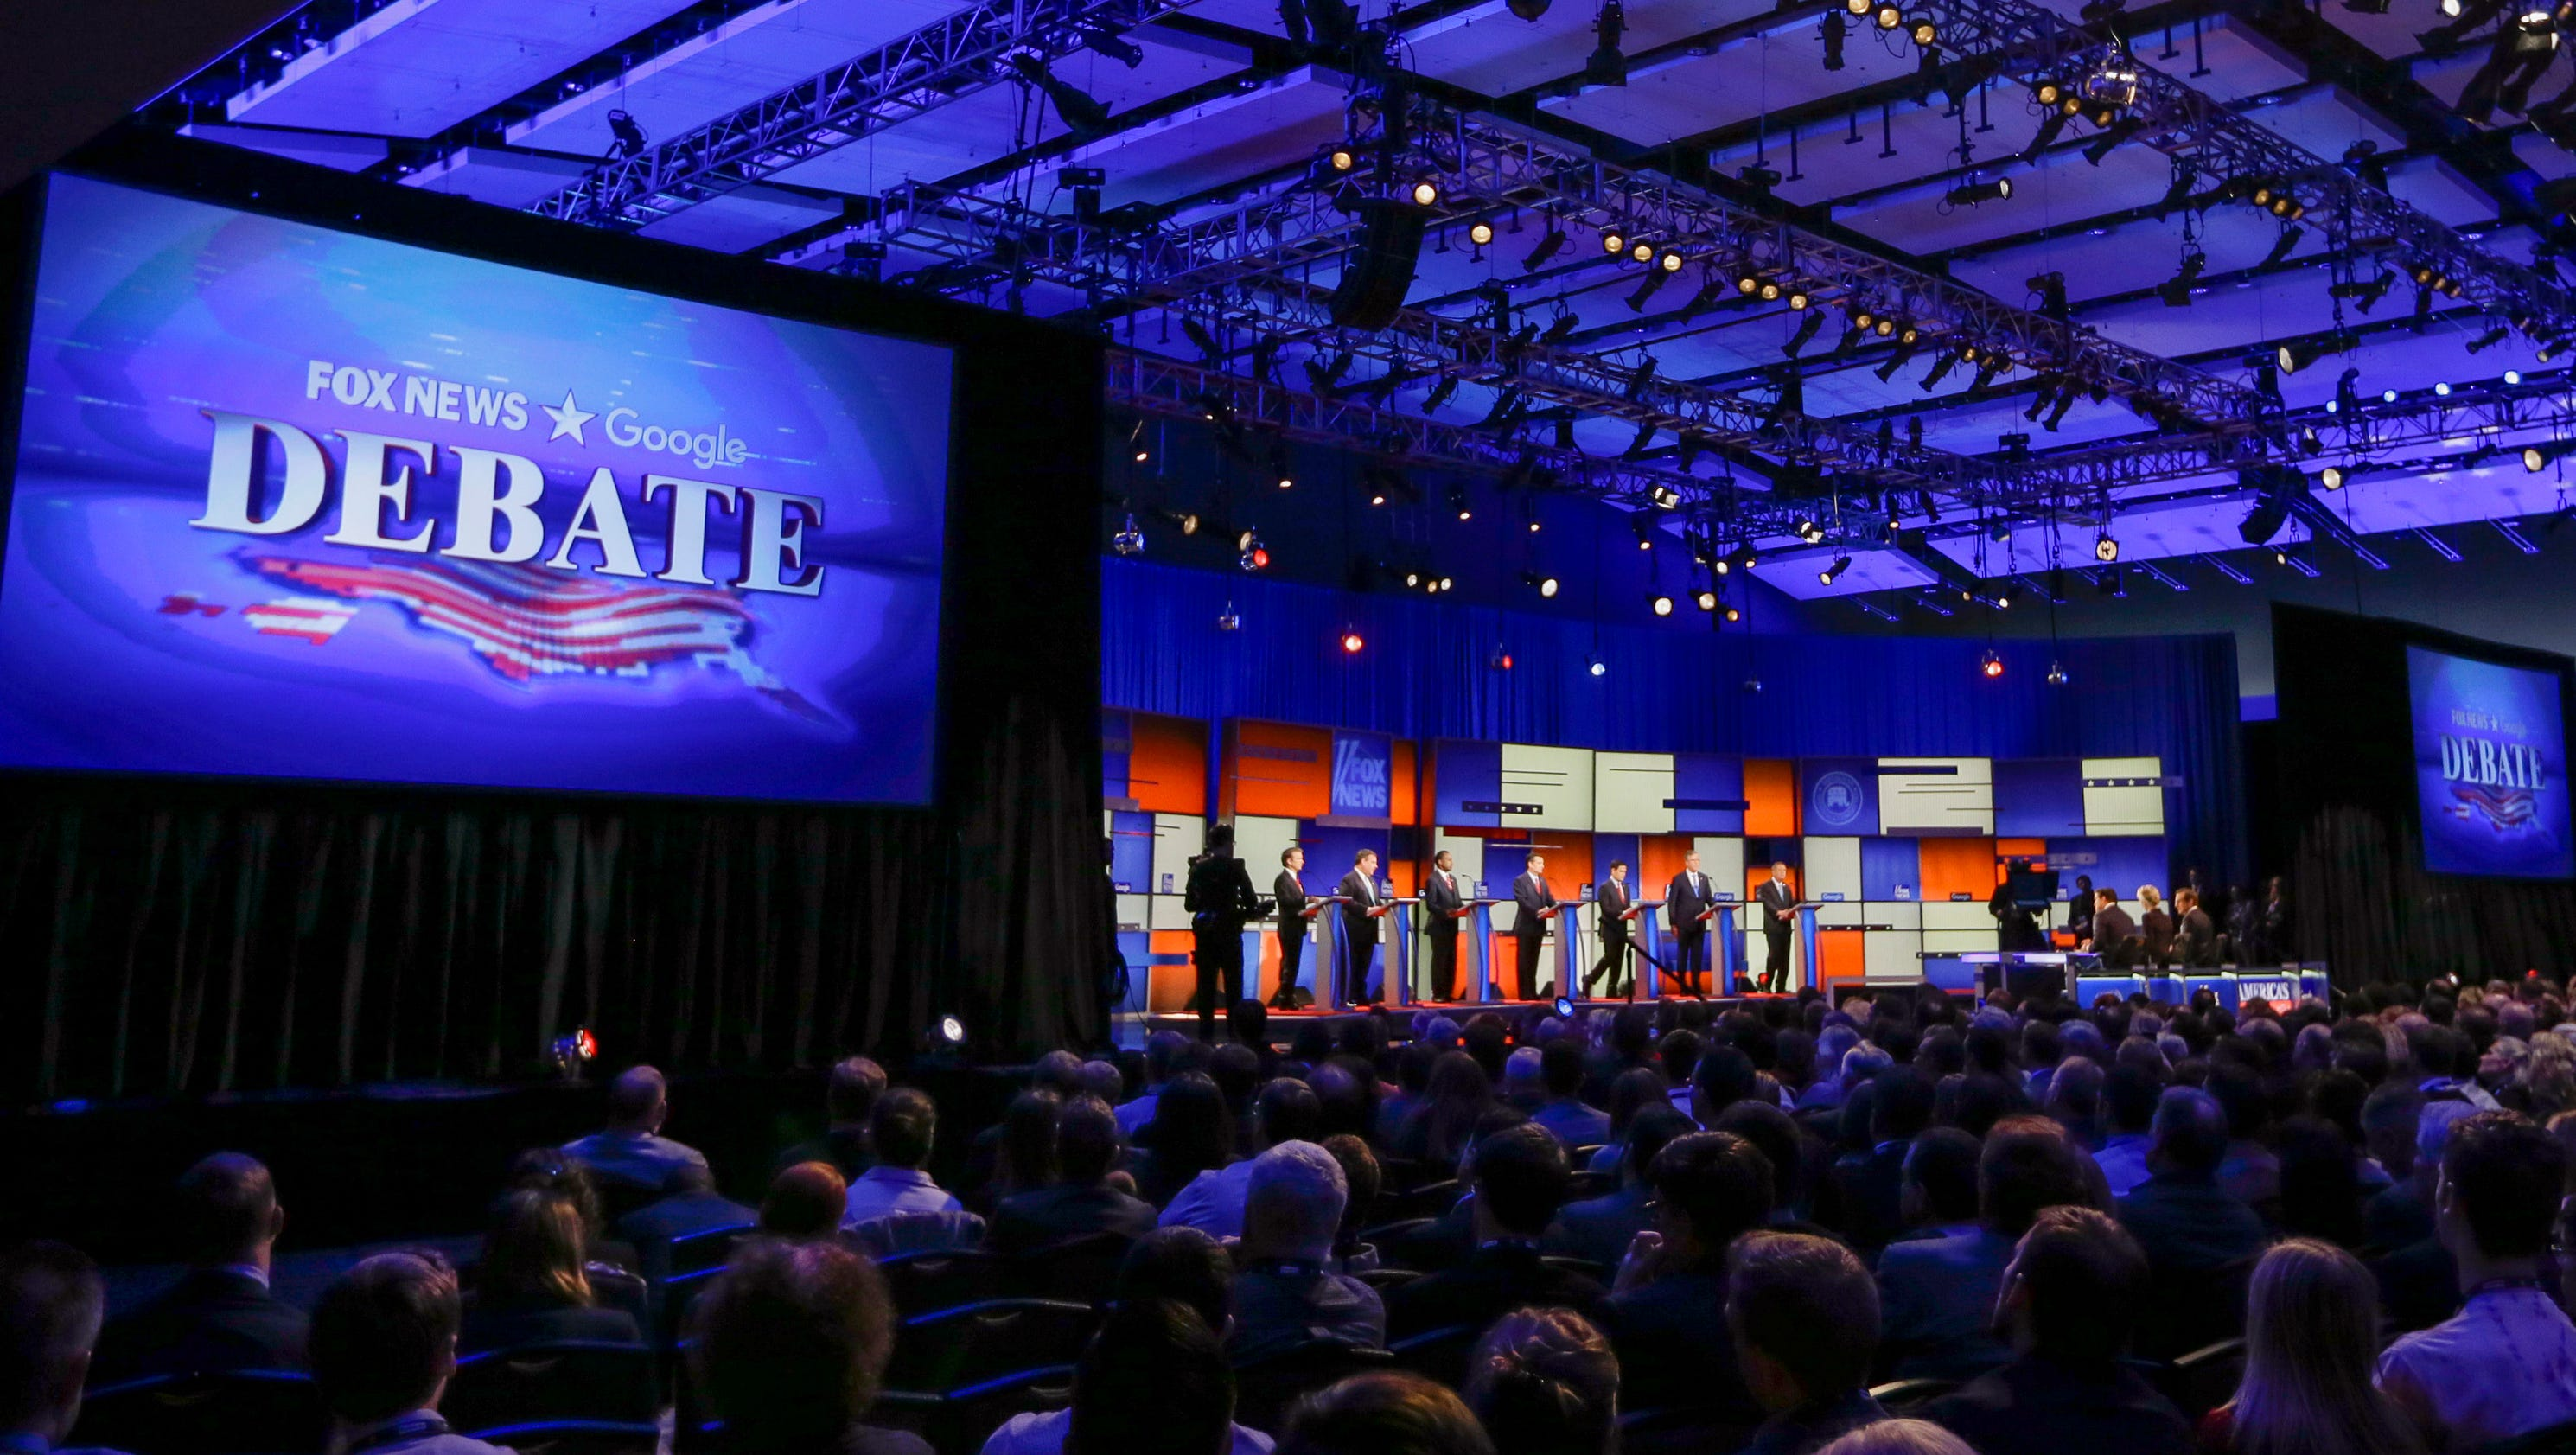 debate Democratic nominee hillary clinton and republican nominee donald trump meet for the third and final presidential debate of the 2016 election, held at the.